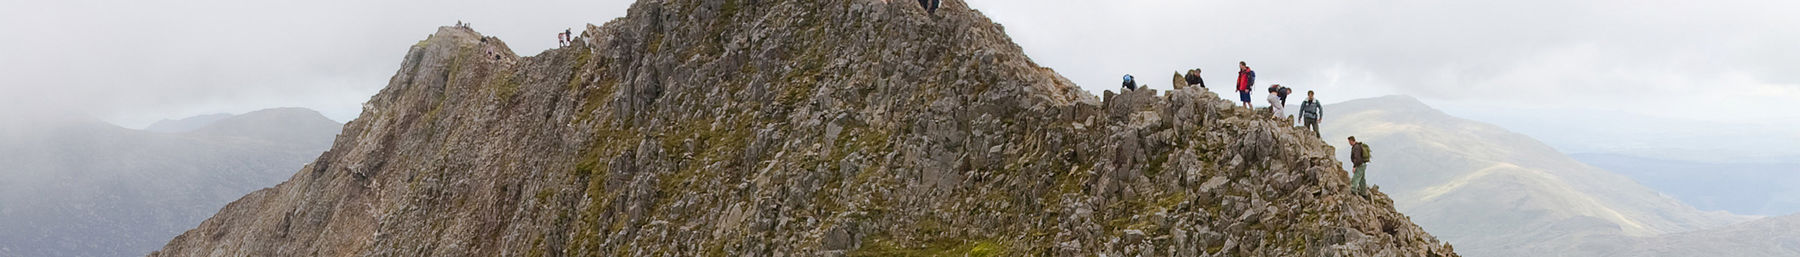 Climbing Crib Goch in Snowdonia National Park